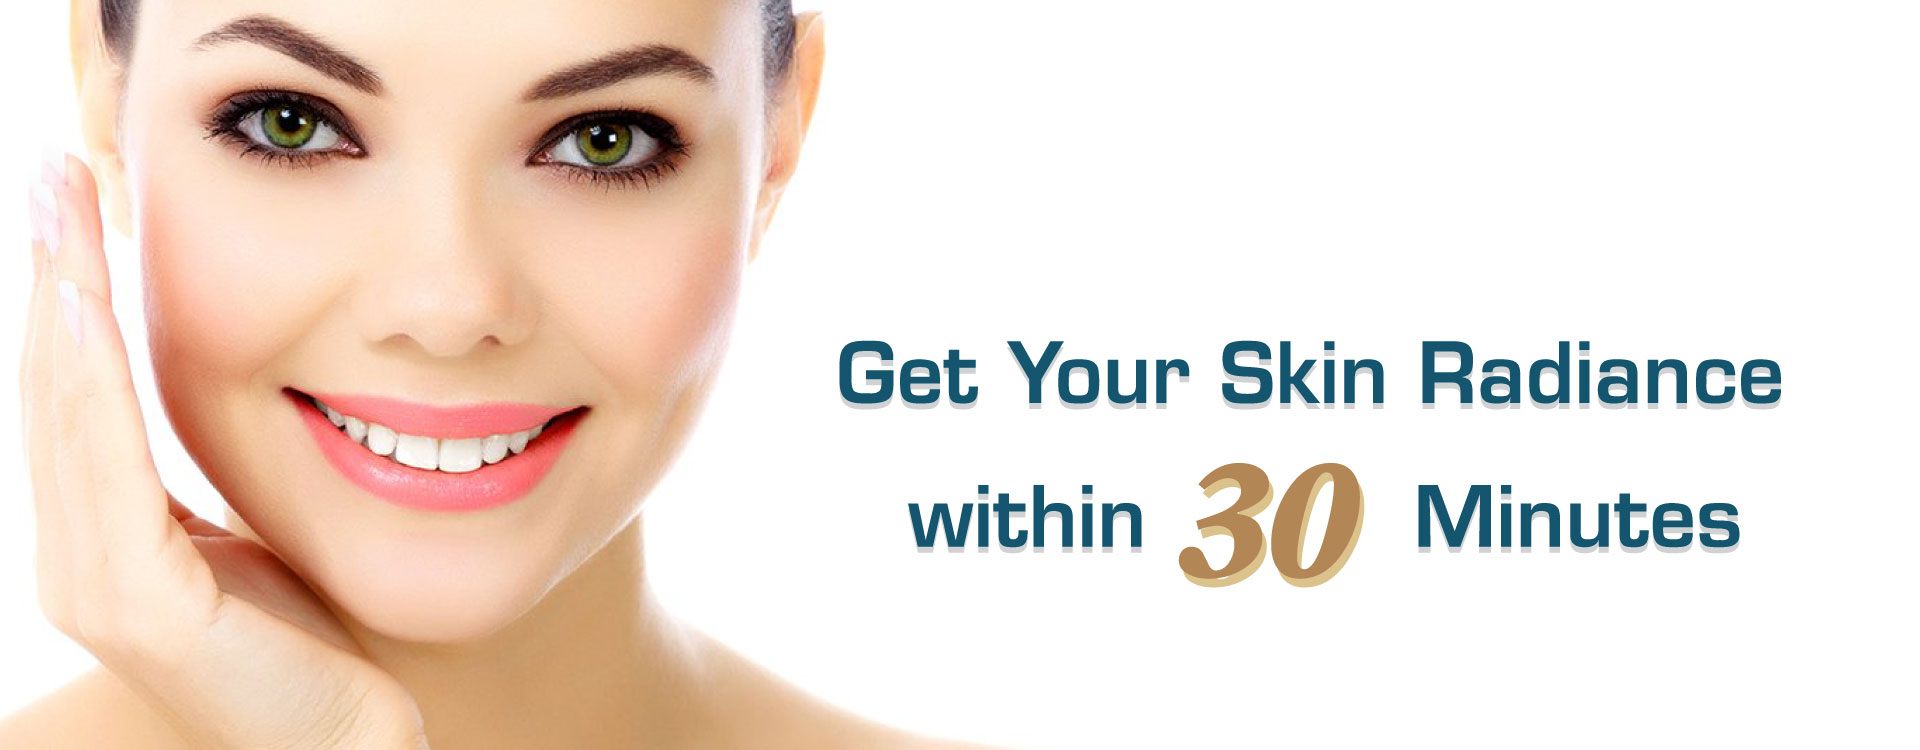 Skin treatment-Skin and Teeth Medical Center - Ajman - UAE